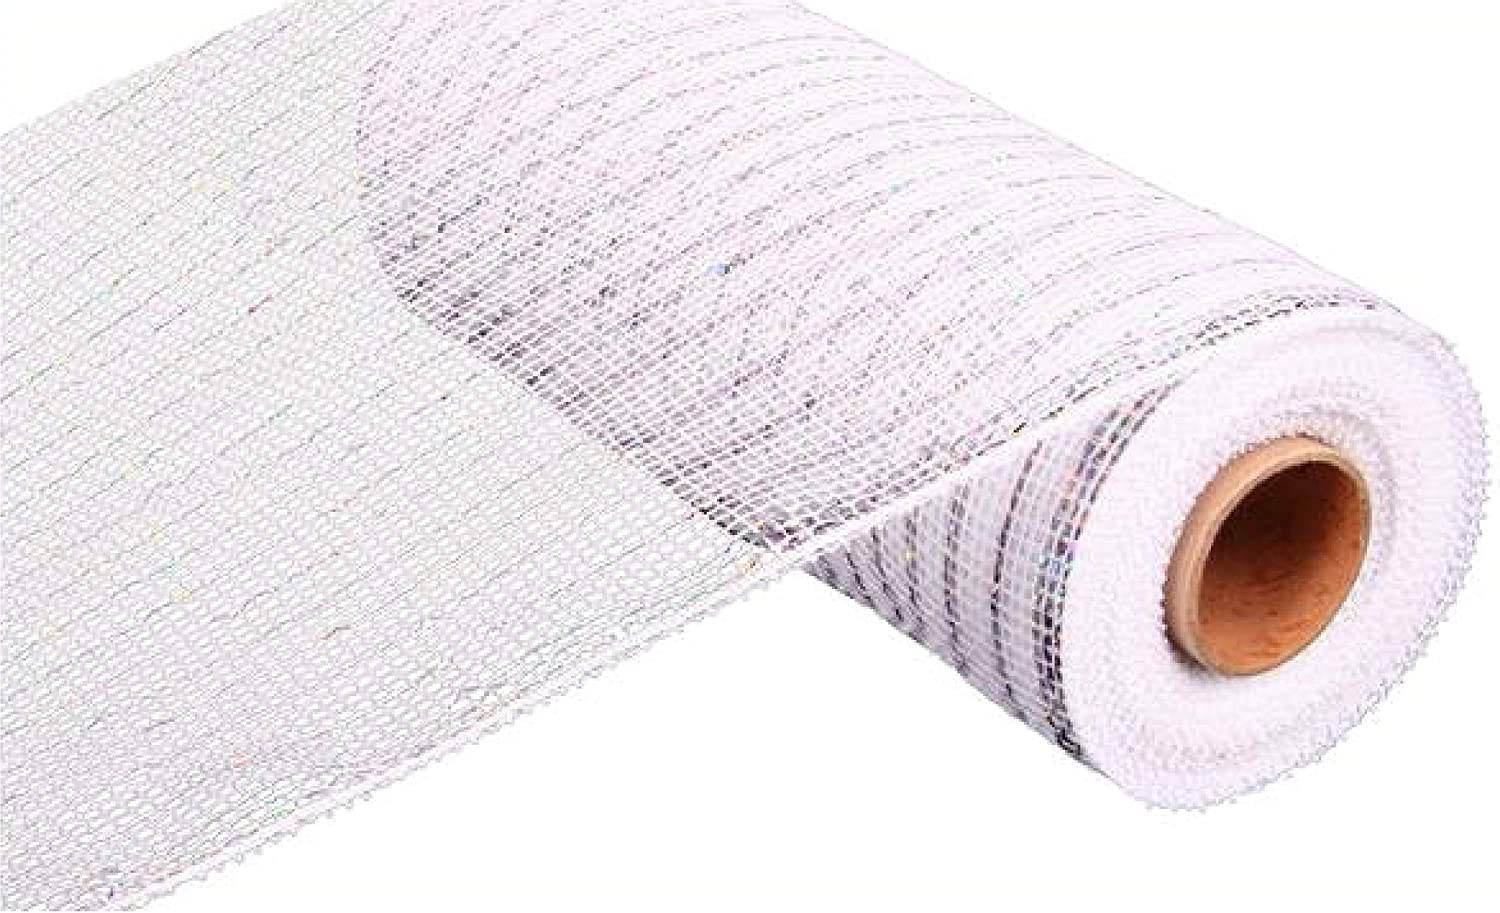 10 inch x 30 feet Deco Poly Mesh Ribbon - White with Silver Foil : RE130127